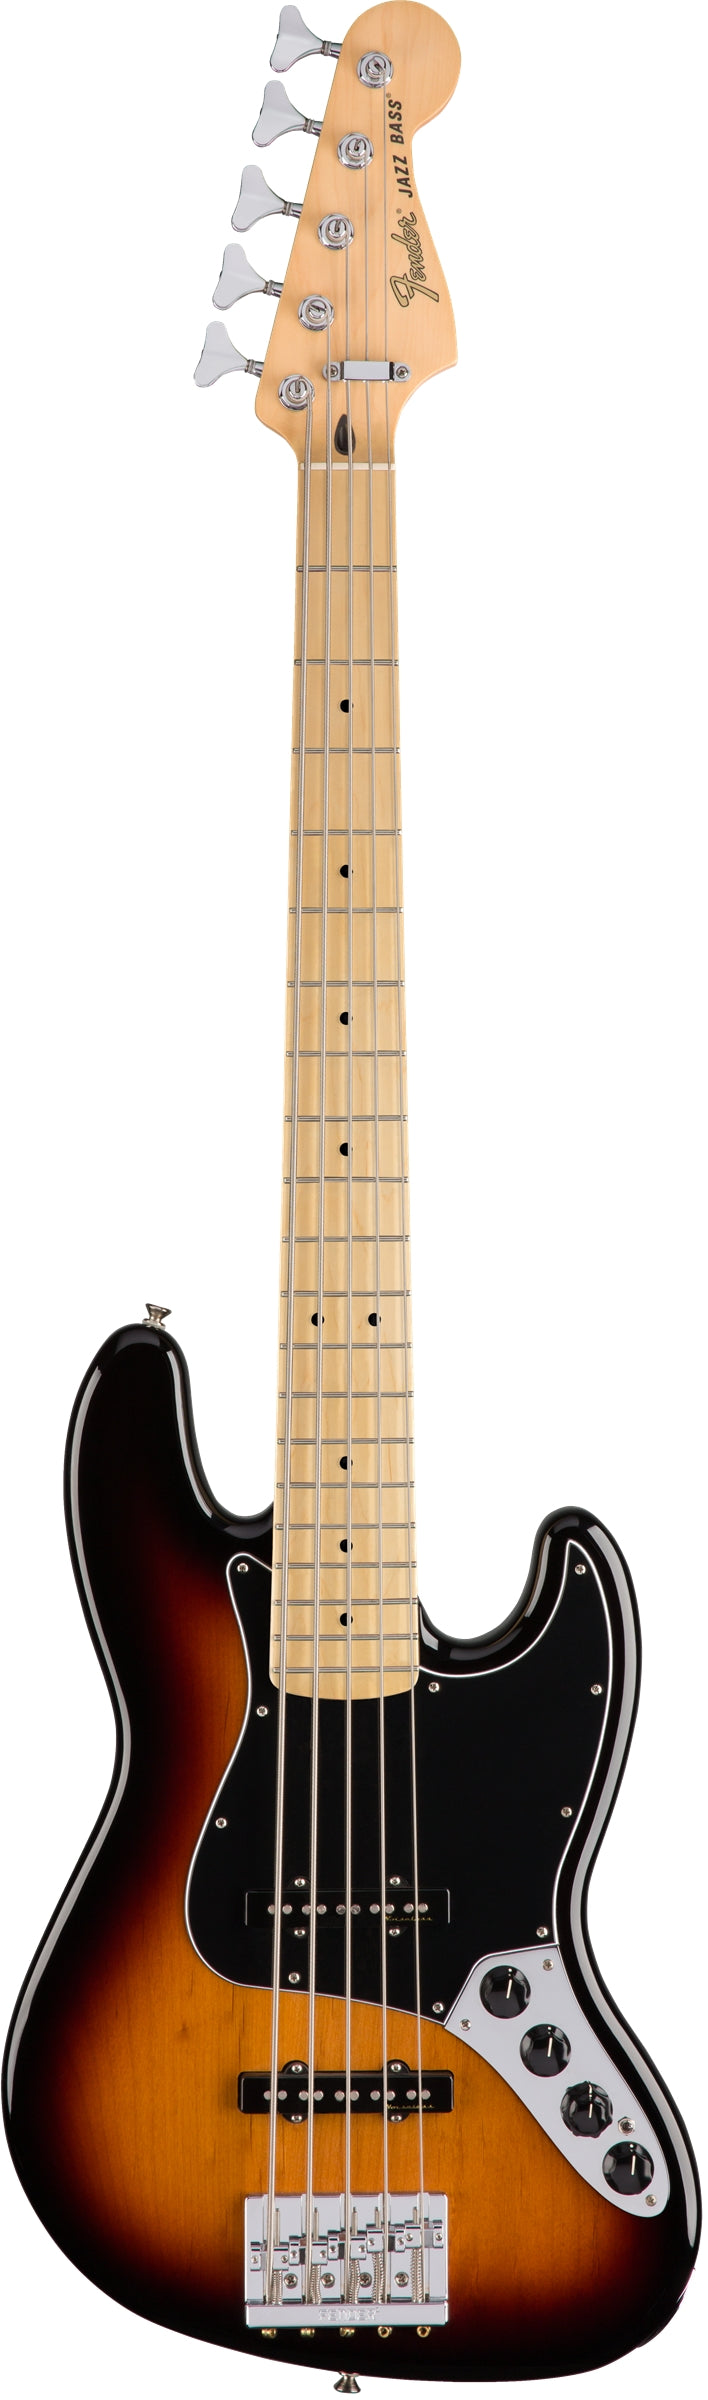 Fender Deluxe Active Jazz Bass V 5 String Electric Bass, Maple Fingerboard - 3 Color Sunburst